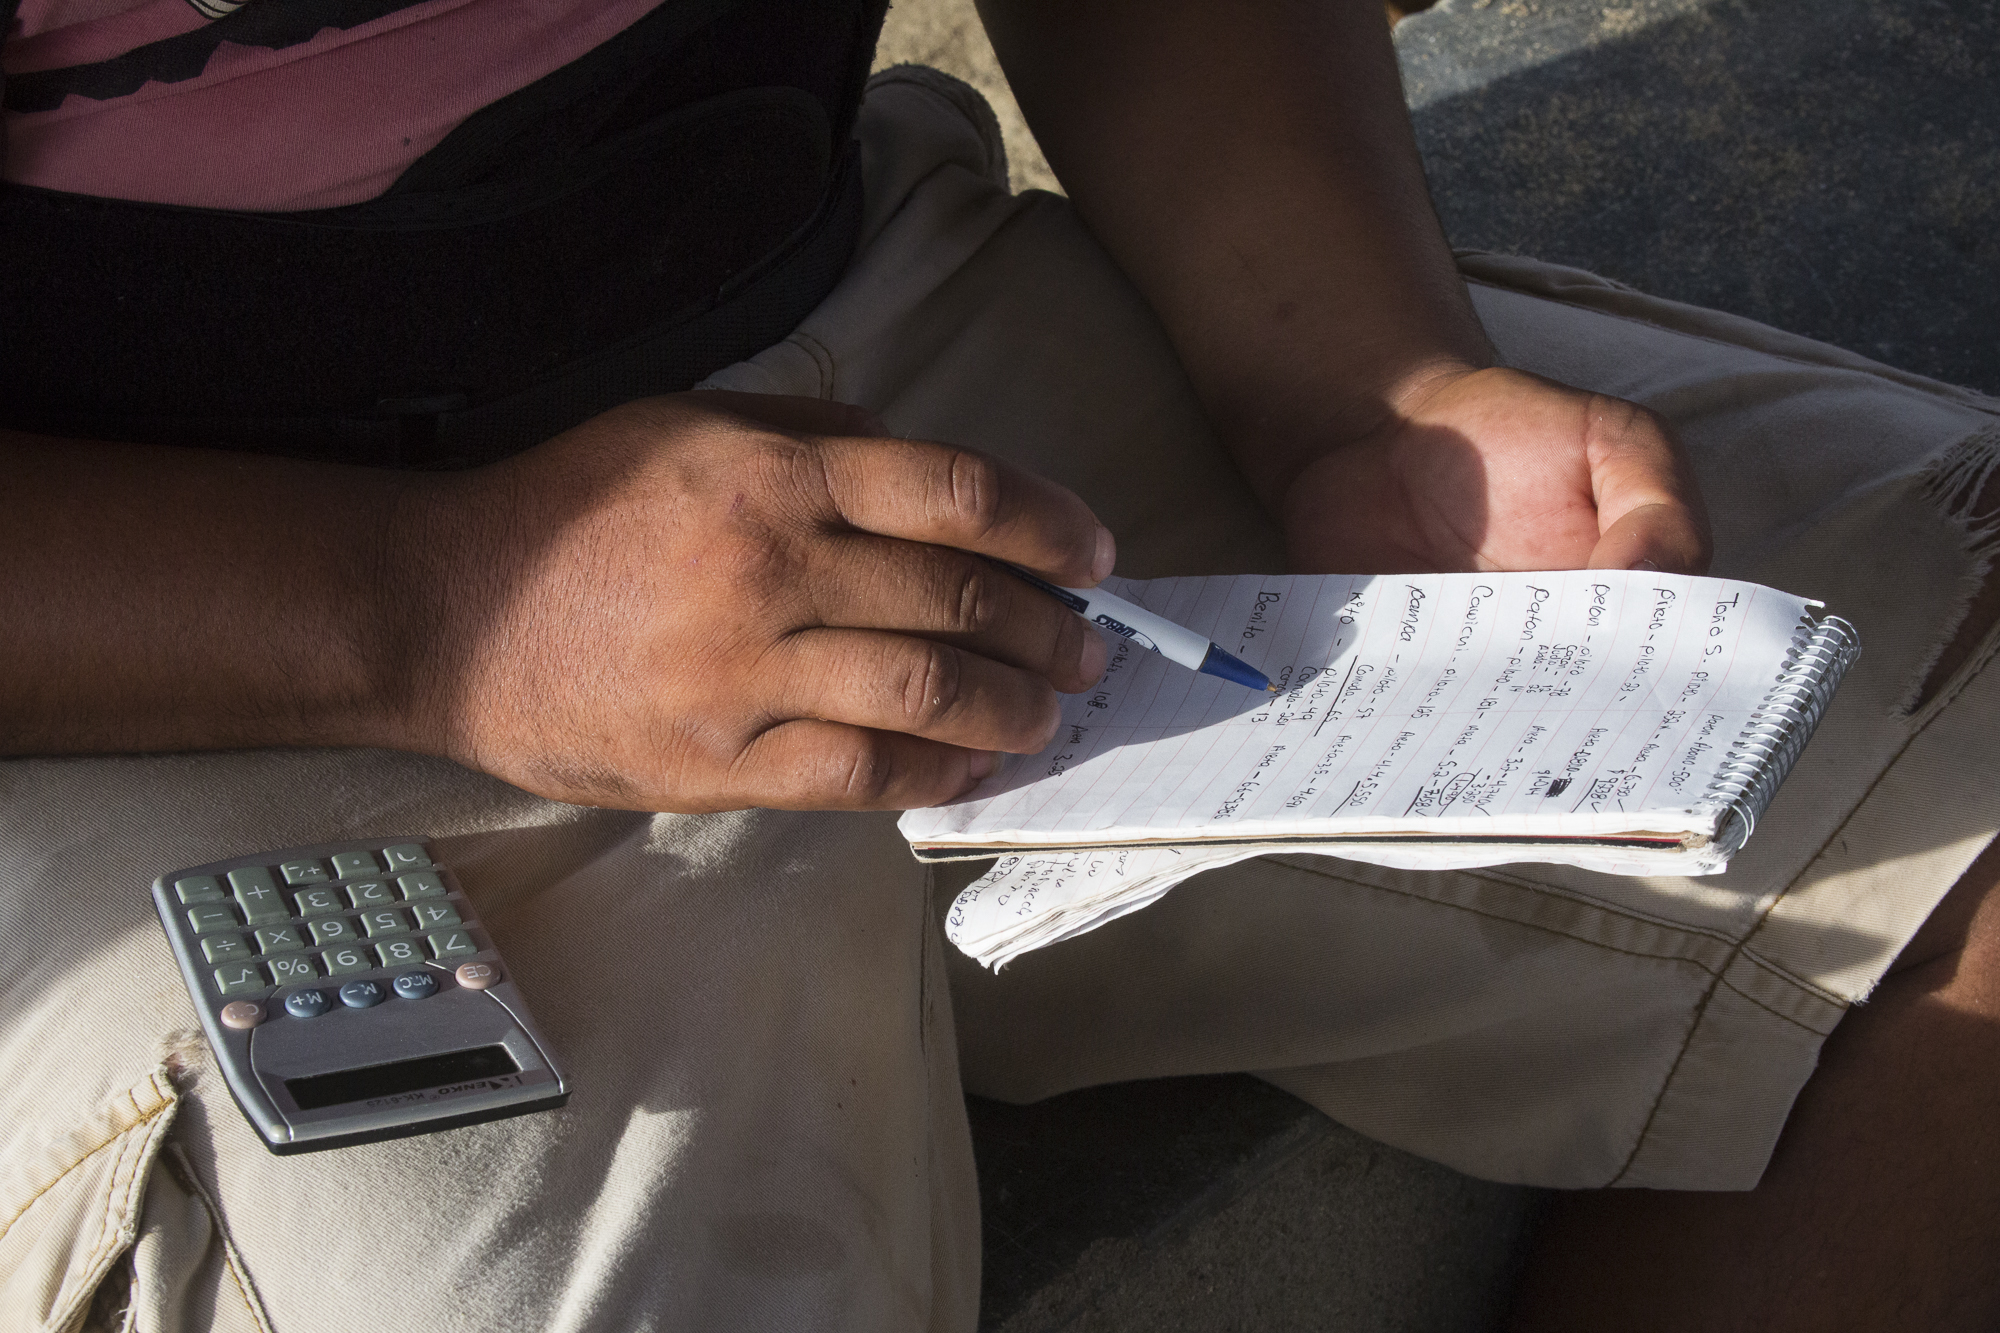 A member of the cooperative writes down data from the day's catch: weight, species, and who caught them. This data is used by them for pricing their products, but it is also used by researchers who study shark populations and authorities who seek to regulate the trade.